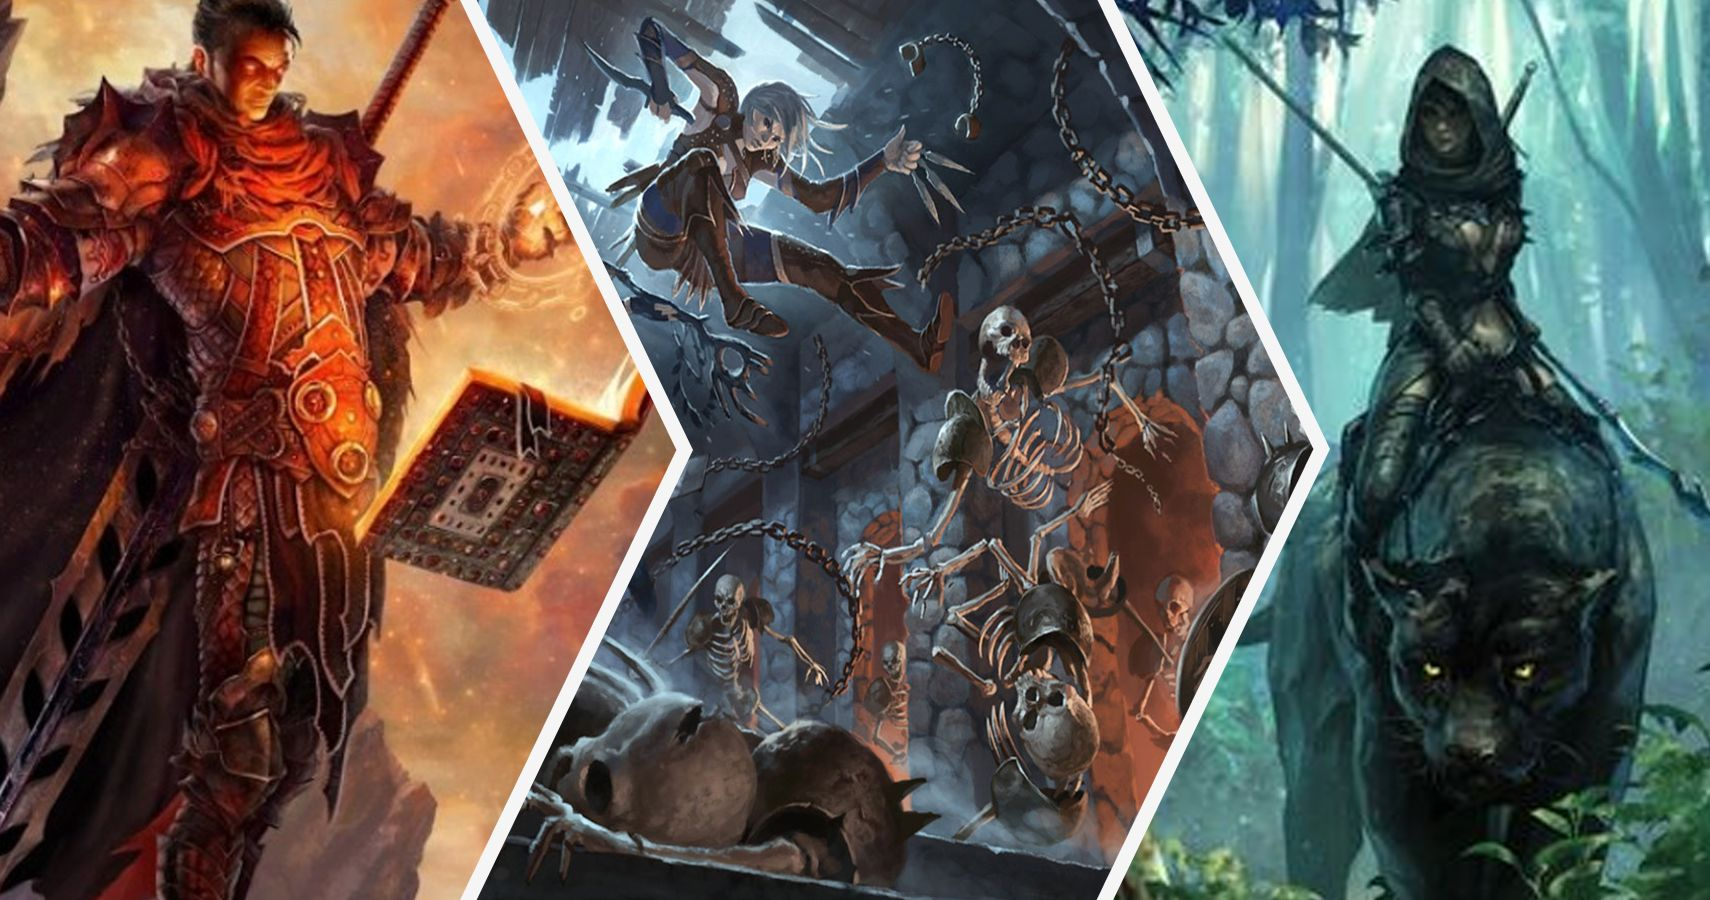 Dungeons & Dragons: 10 Rules That Were Changed For The